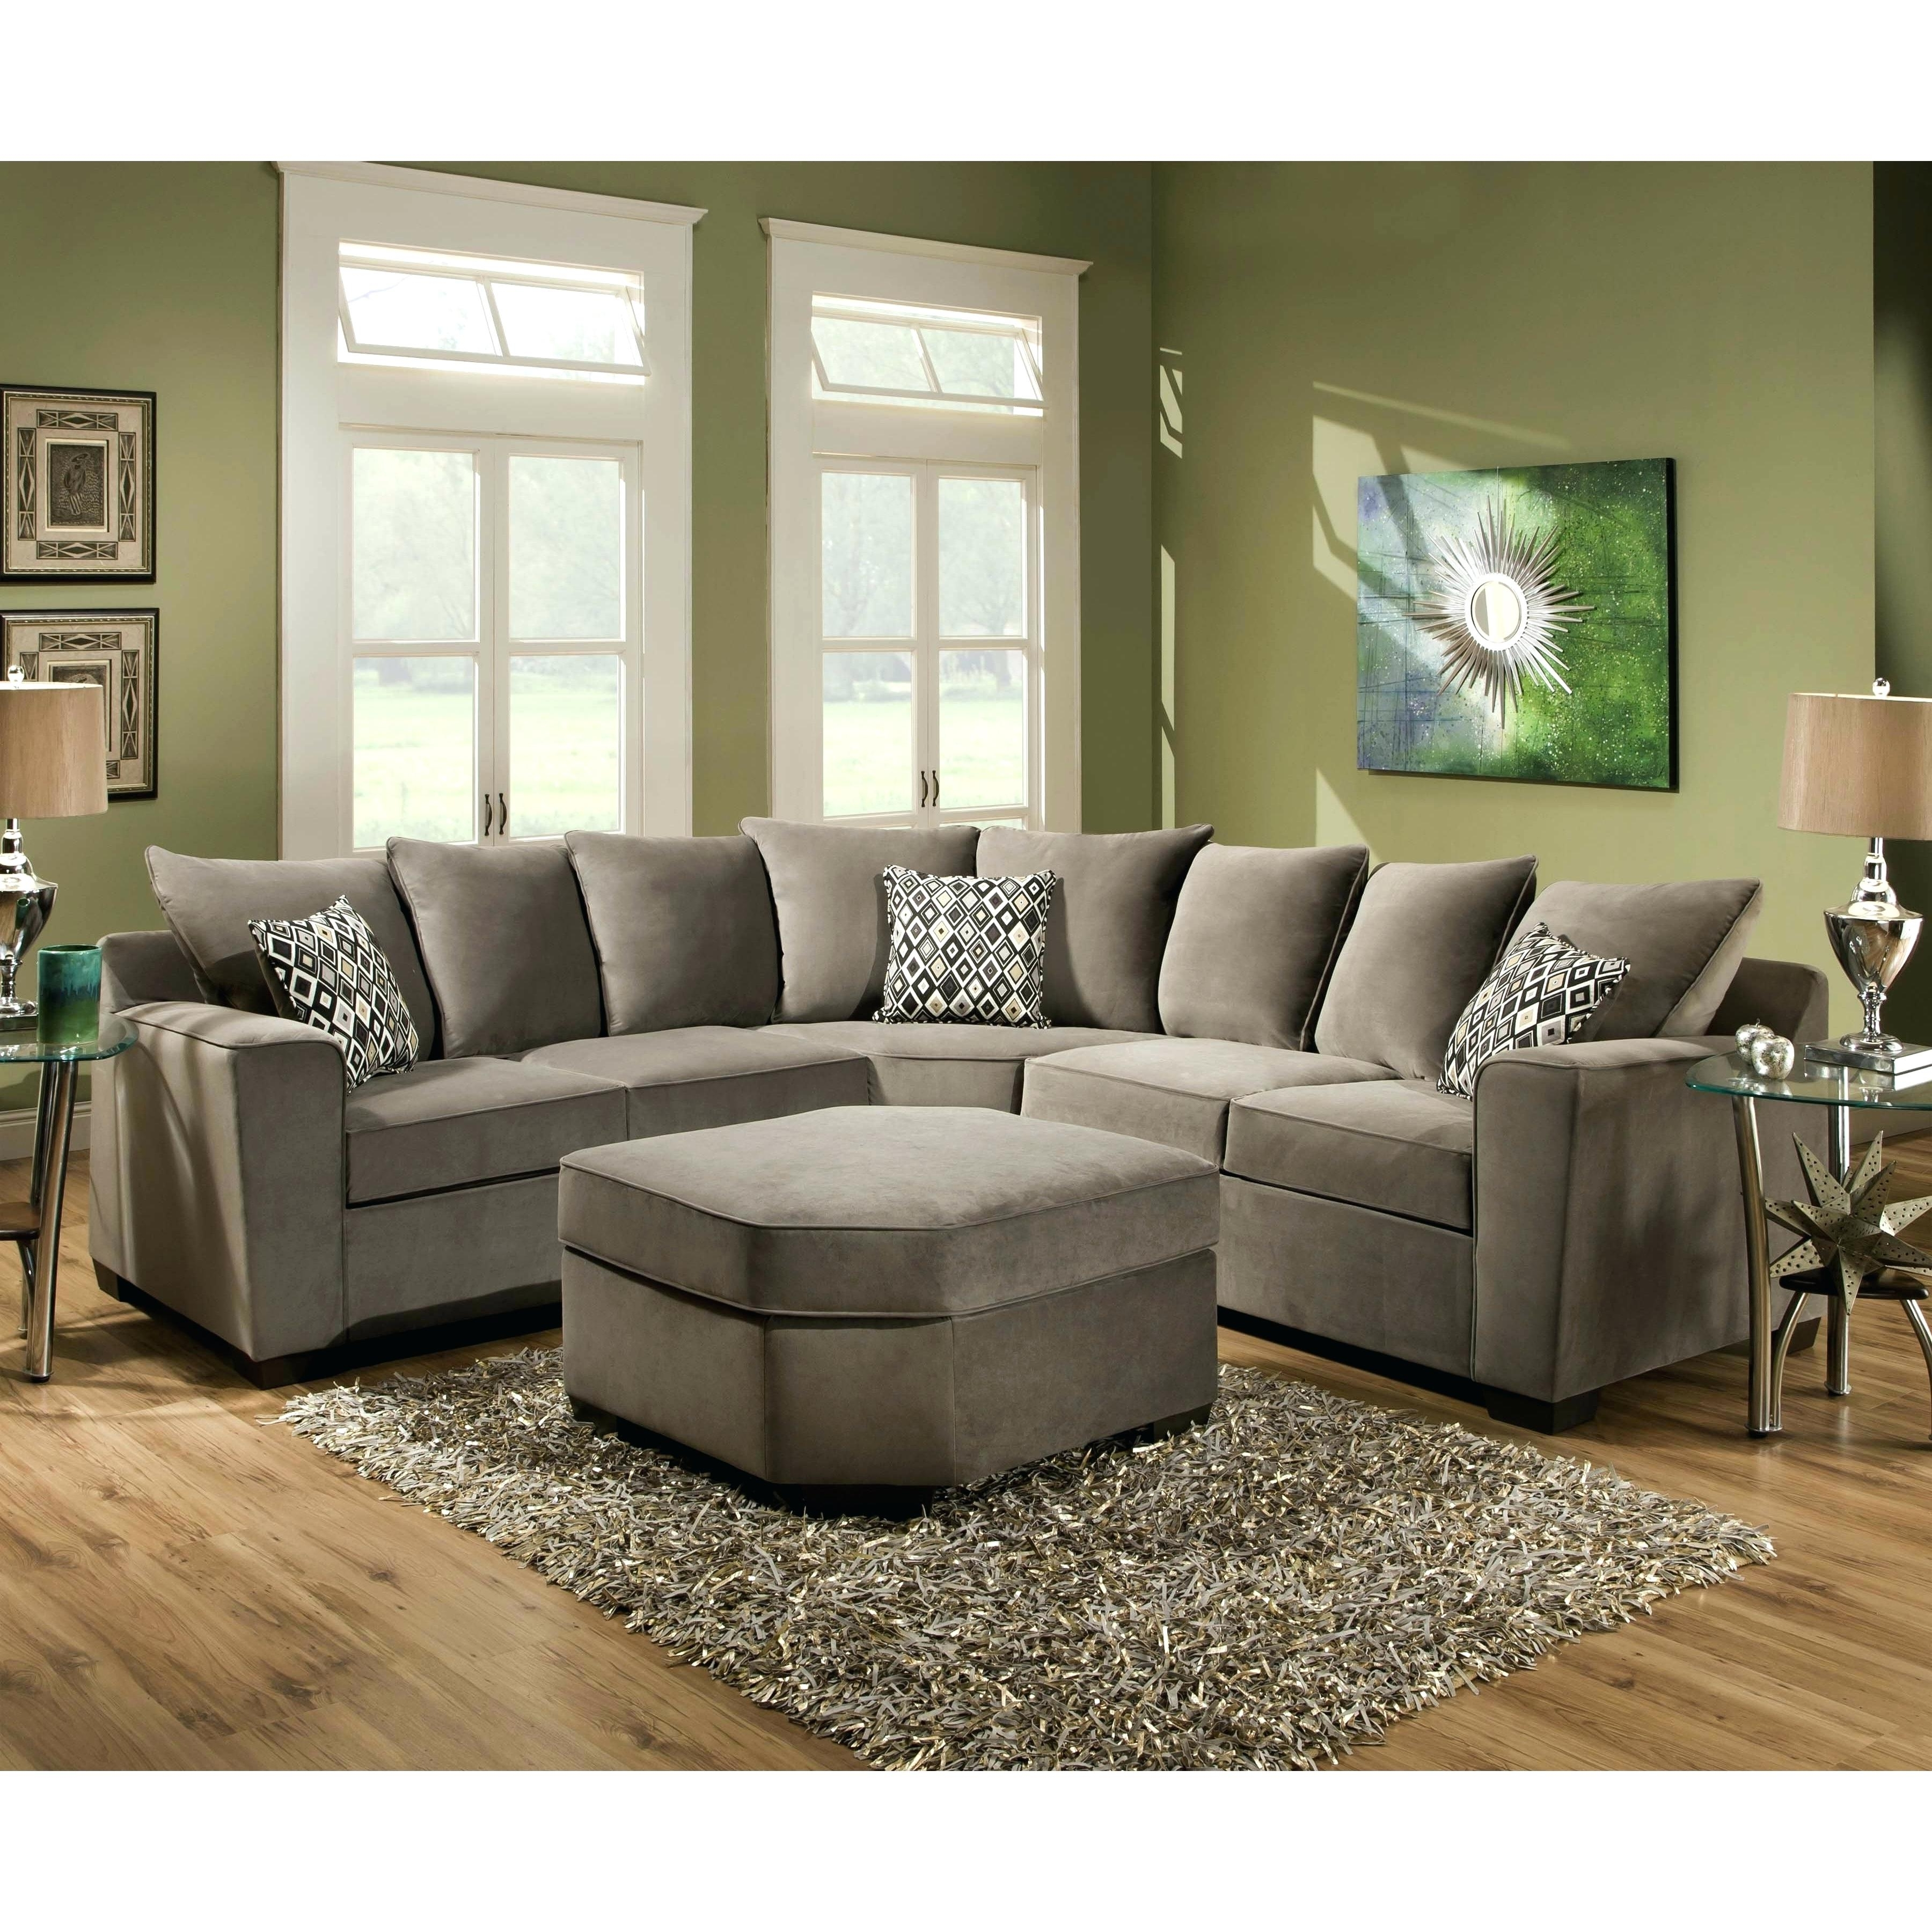 Best And Newest Small Apartment Sectional Sofa Therapy Sofas Nyc – Emsg Pertaining To Nyc Sectional Sofas (View 14 of 15)